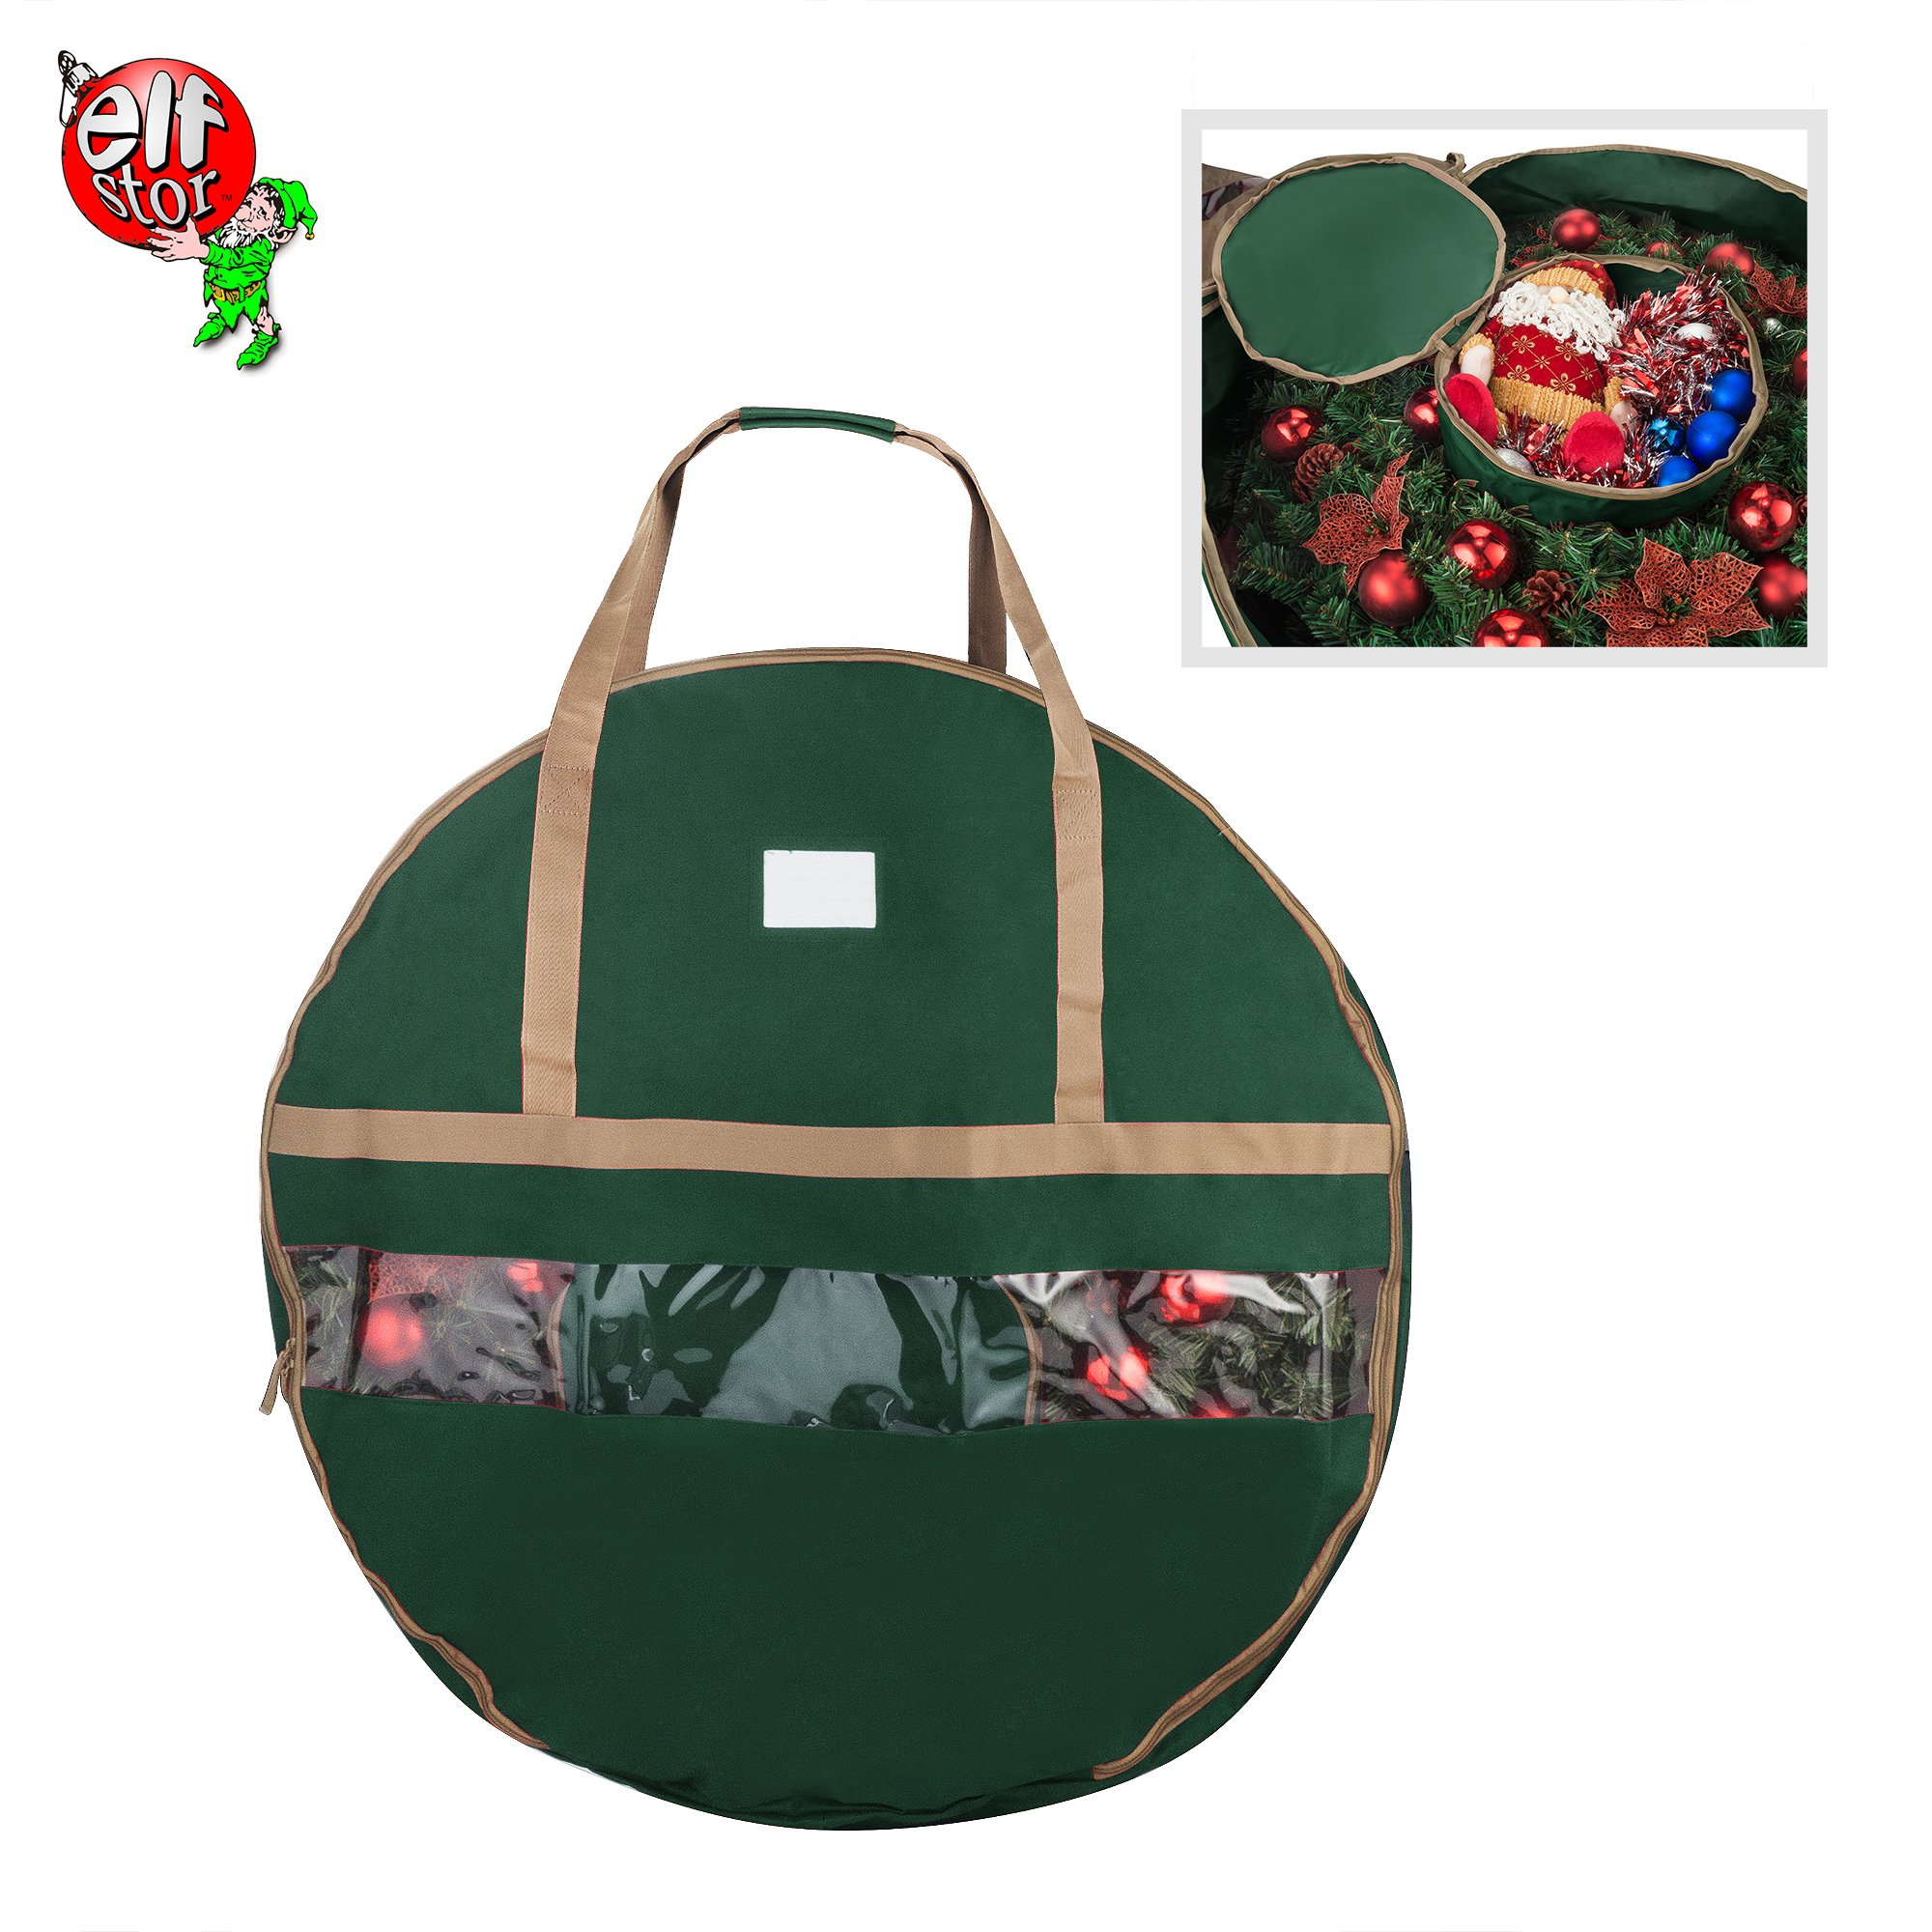 Elf Stor 83-DT5168 Ultimate Green Holiday Christmas Storage Bag for 48'' Inch Wreaths by Elf Stor